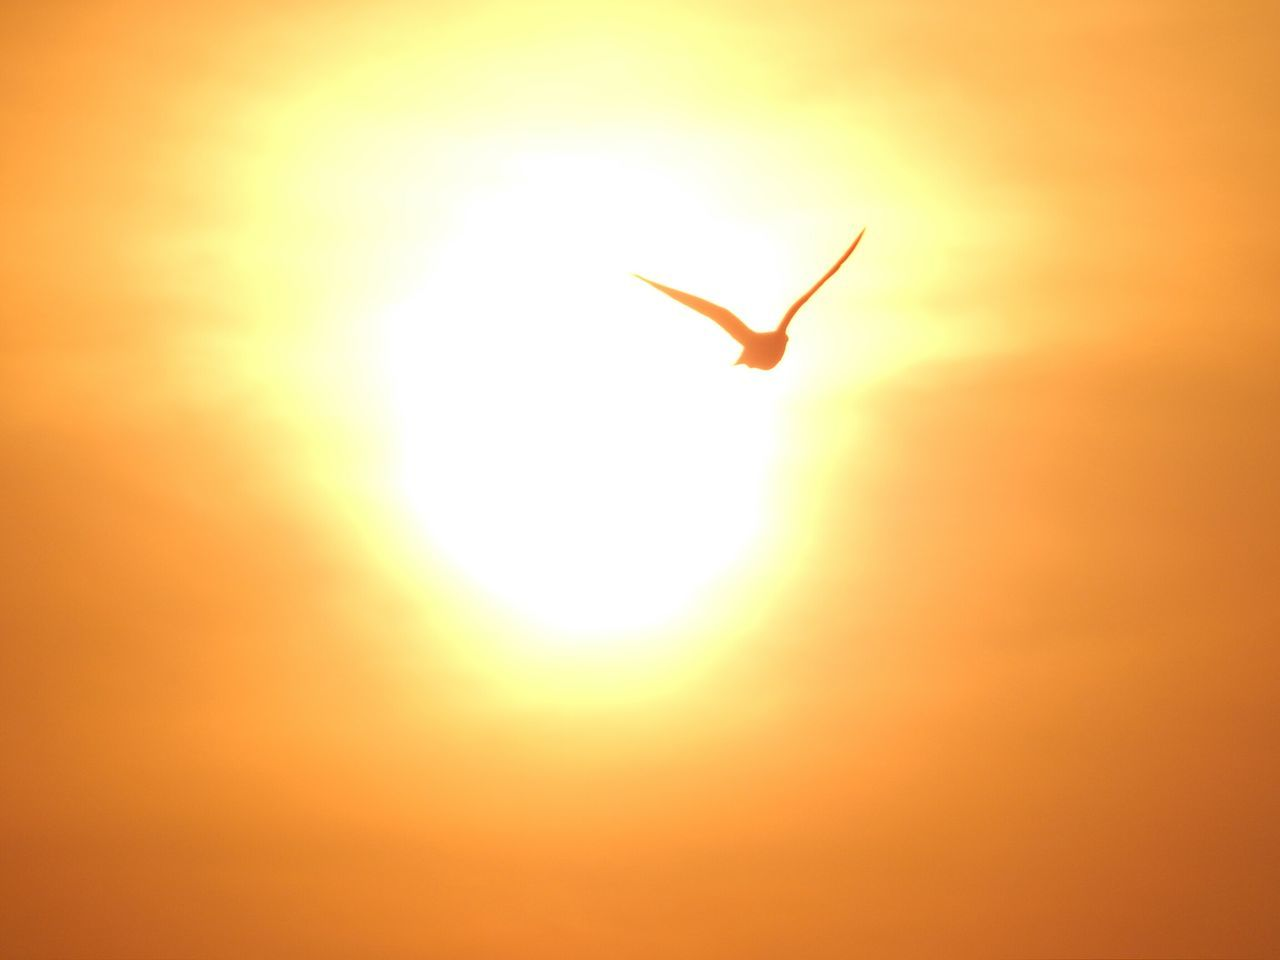 One Animal Animals In The Wild Animal Themes Flying Sun Full Length Sunset Animal Body Part Insect Hummingbird Close-up Animal Wildlife No People Nature Outdoors Day Adapted To The City